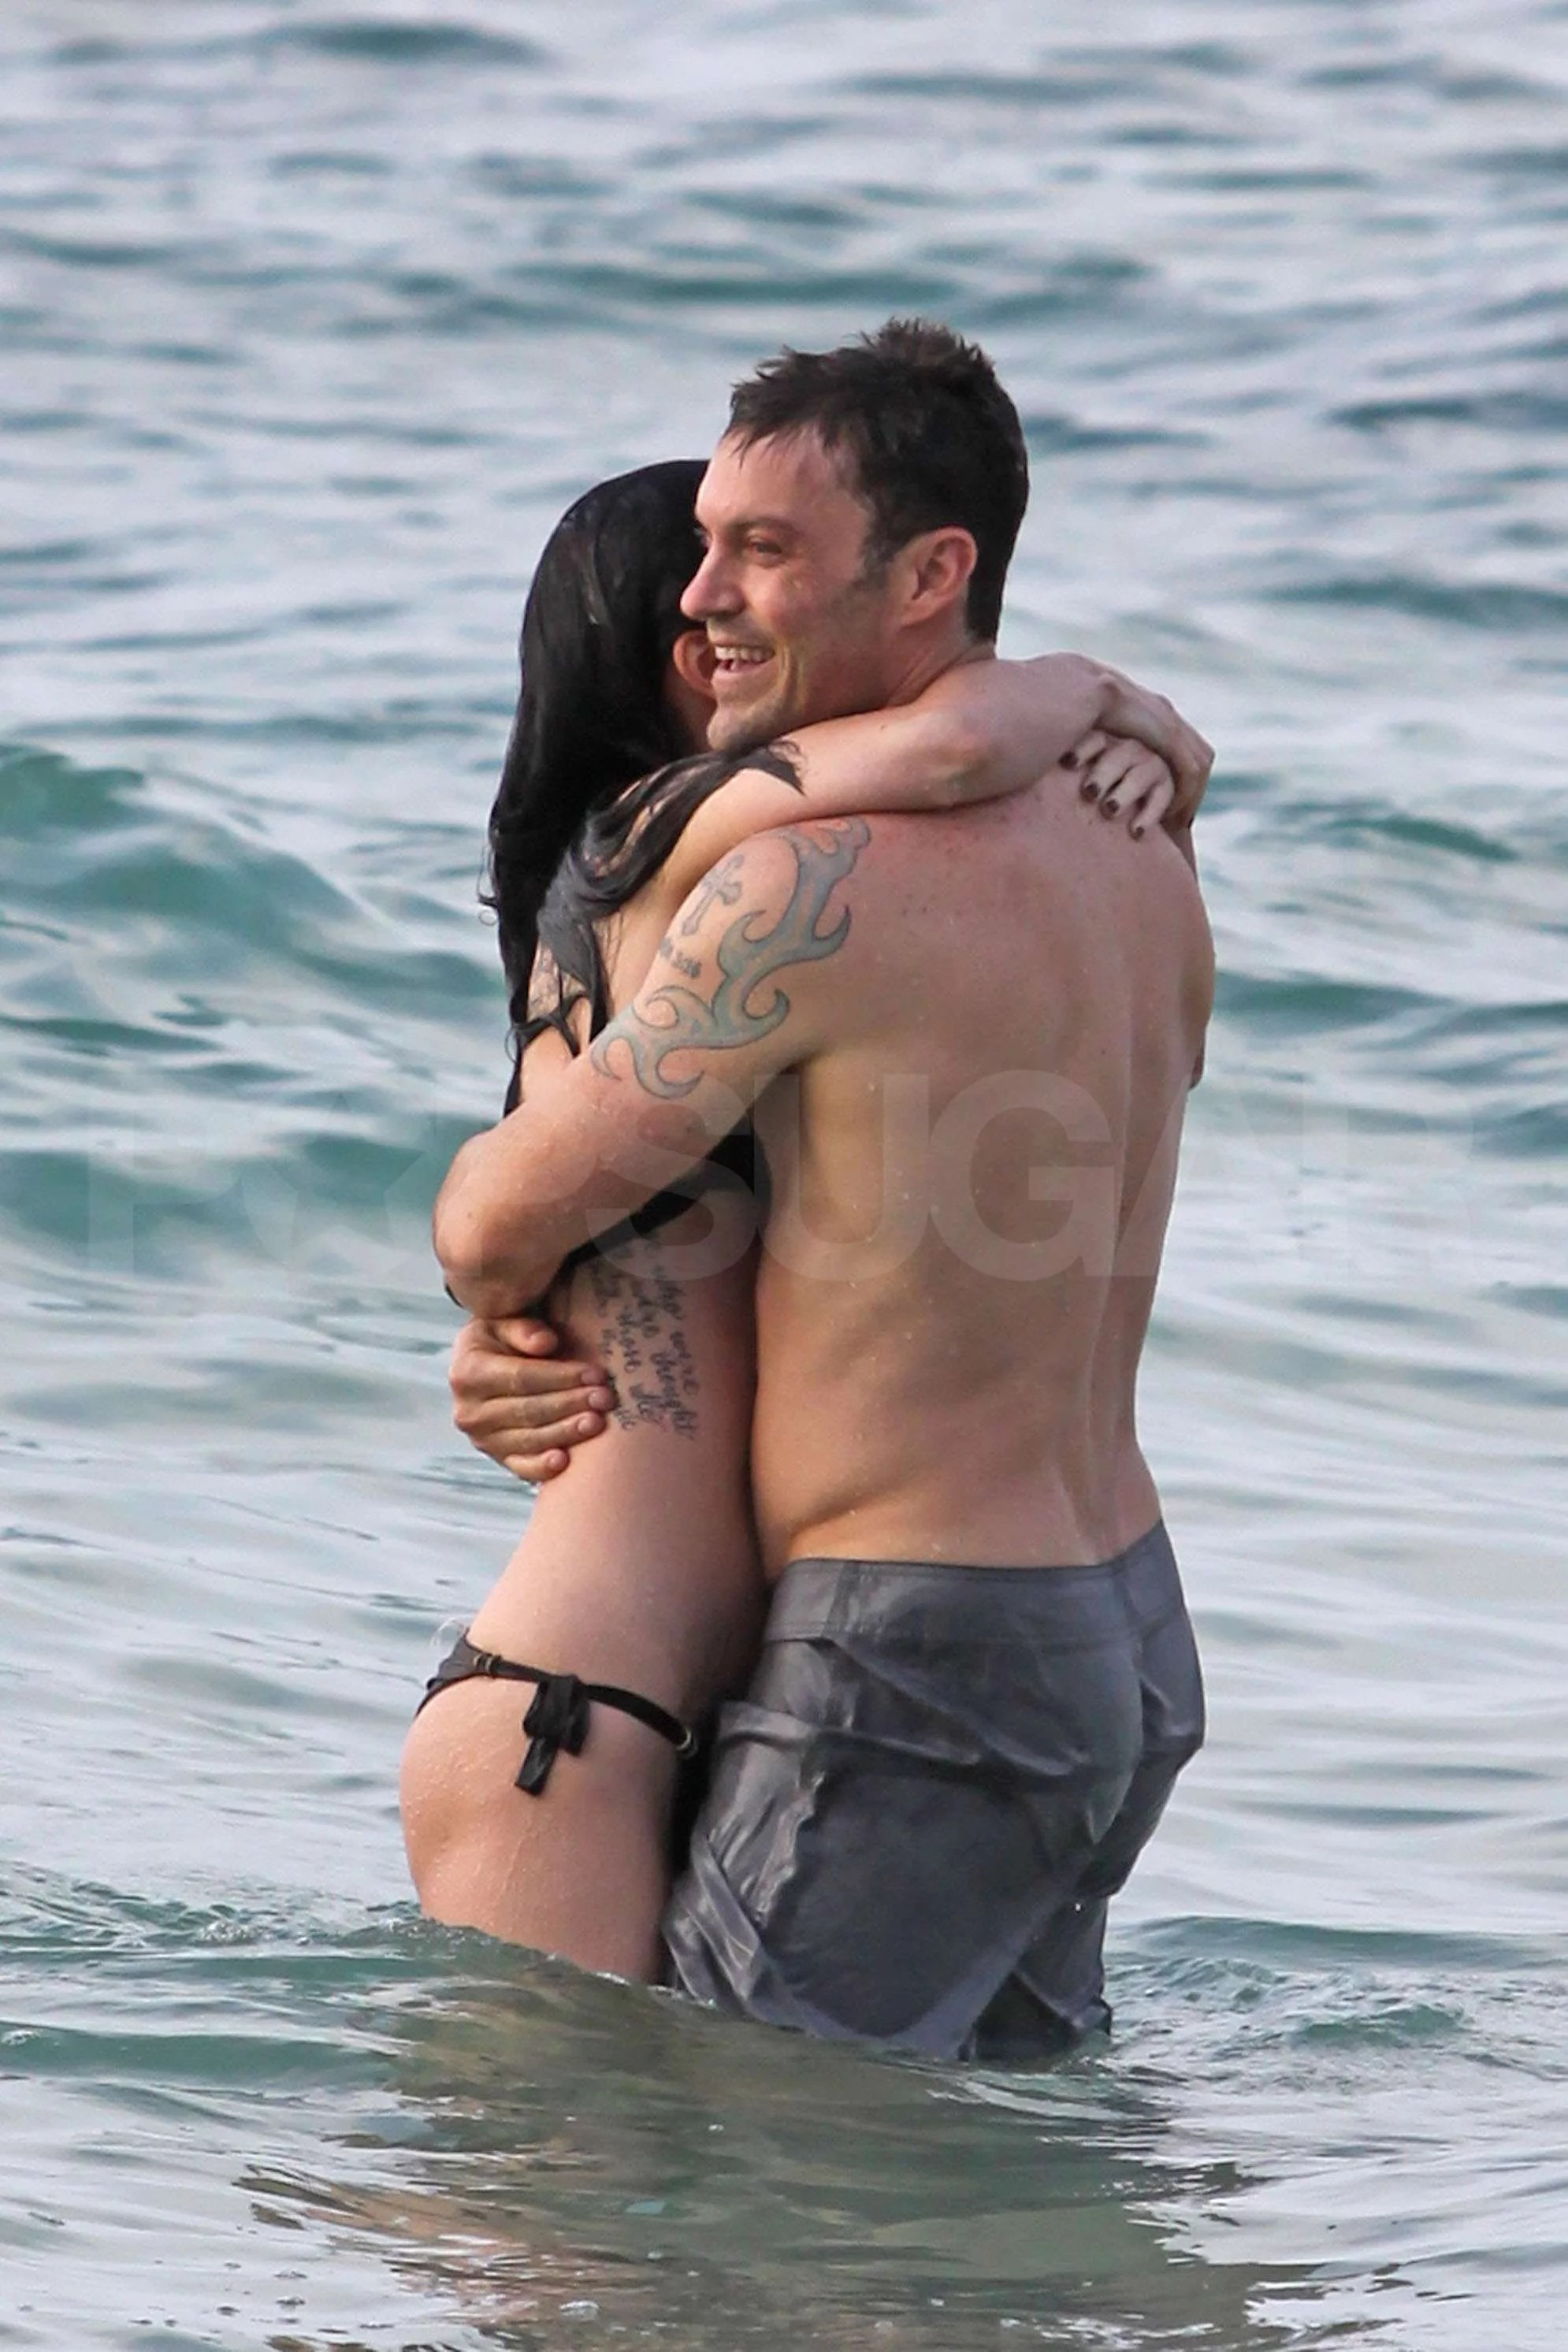 Planet Shoes Myer Megan Fox Bikini Pictures In Hawaii With Brian Austin